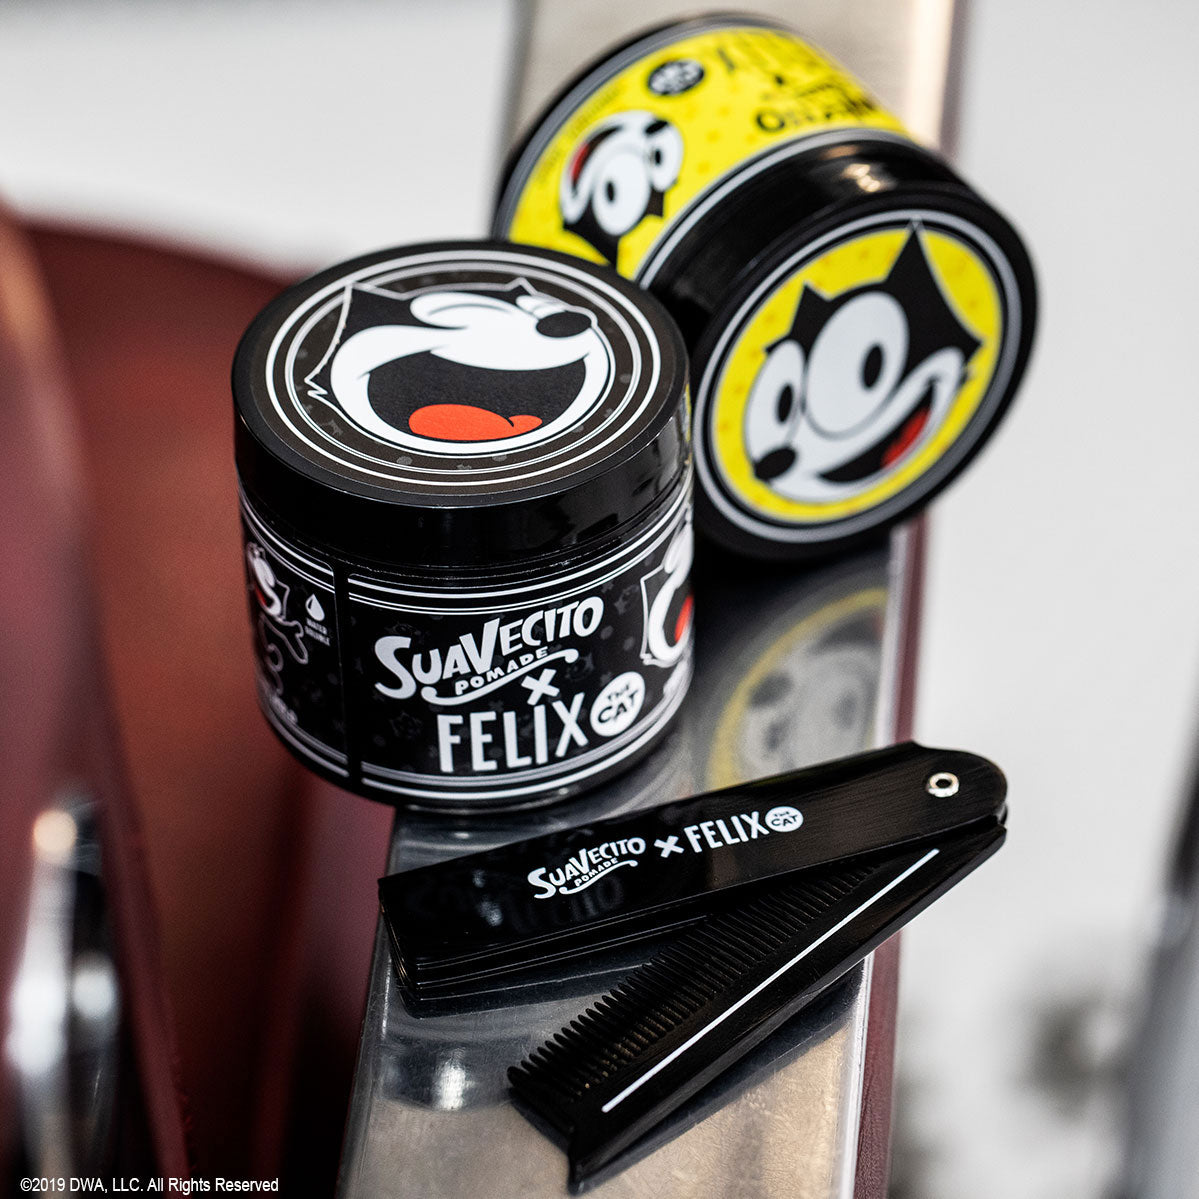 Suavecito X Felix the Cat Pomade on a barber chair